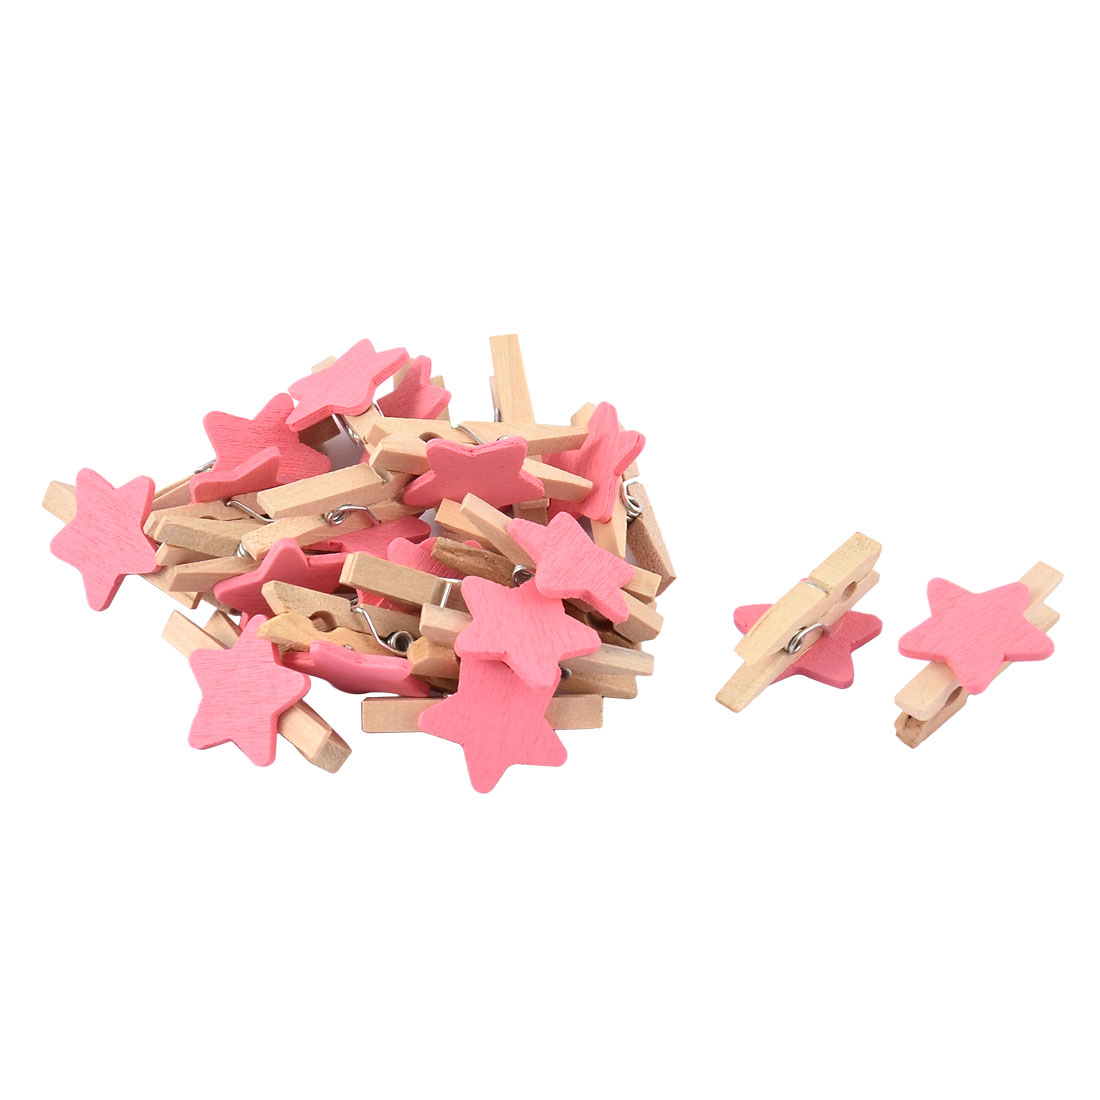 Unique Bargains Festival Weeding Cards Photo Clamp Spring Pegs Mini Wooden Clip Pink 20pcs